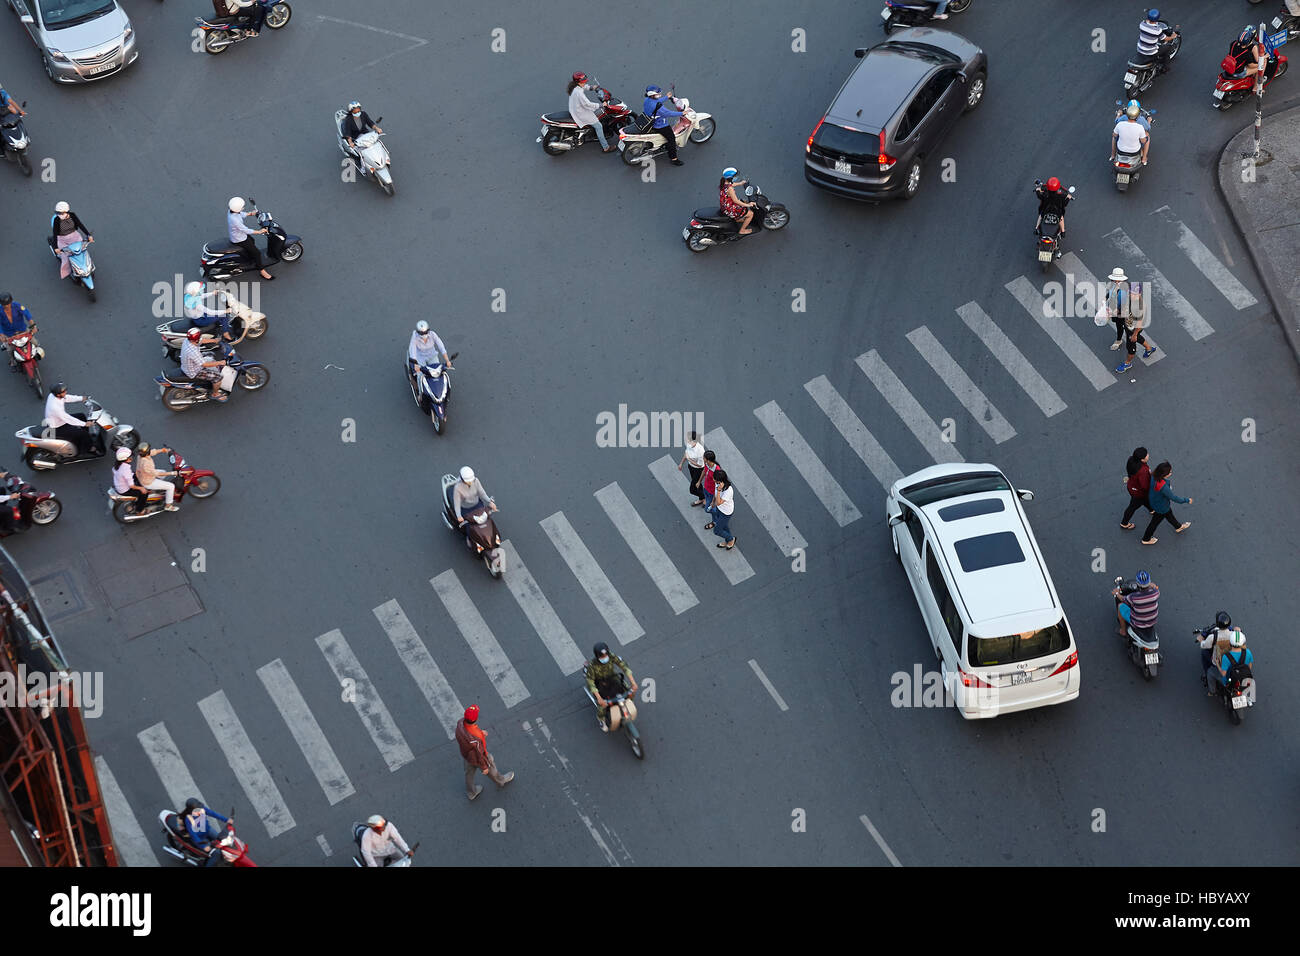 Motorcycles, cars, and pedestrian crossing at Ben Thanh roundabout, Ho Chi Minh City (Saigon), Vietnam Stock Photo